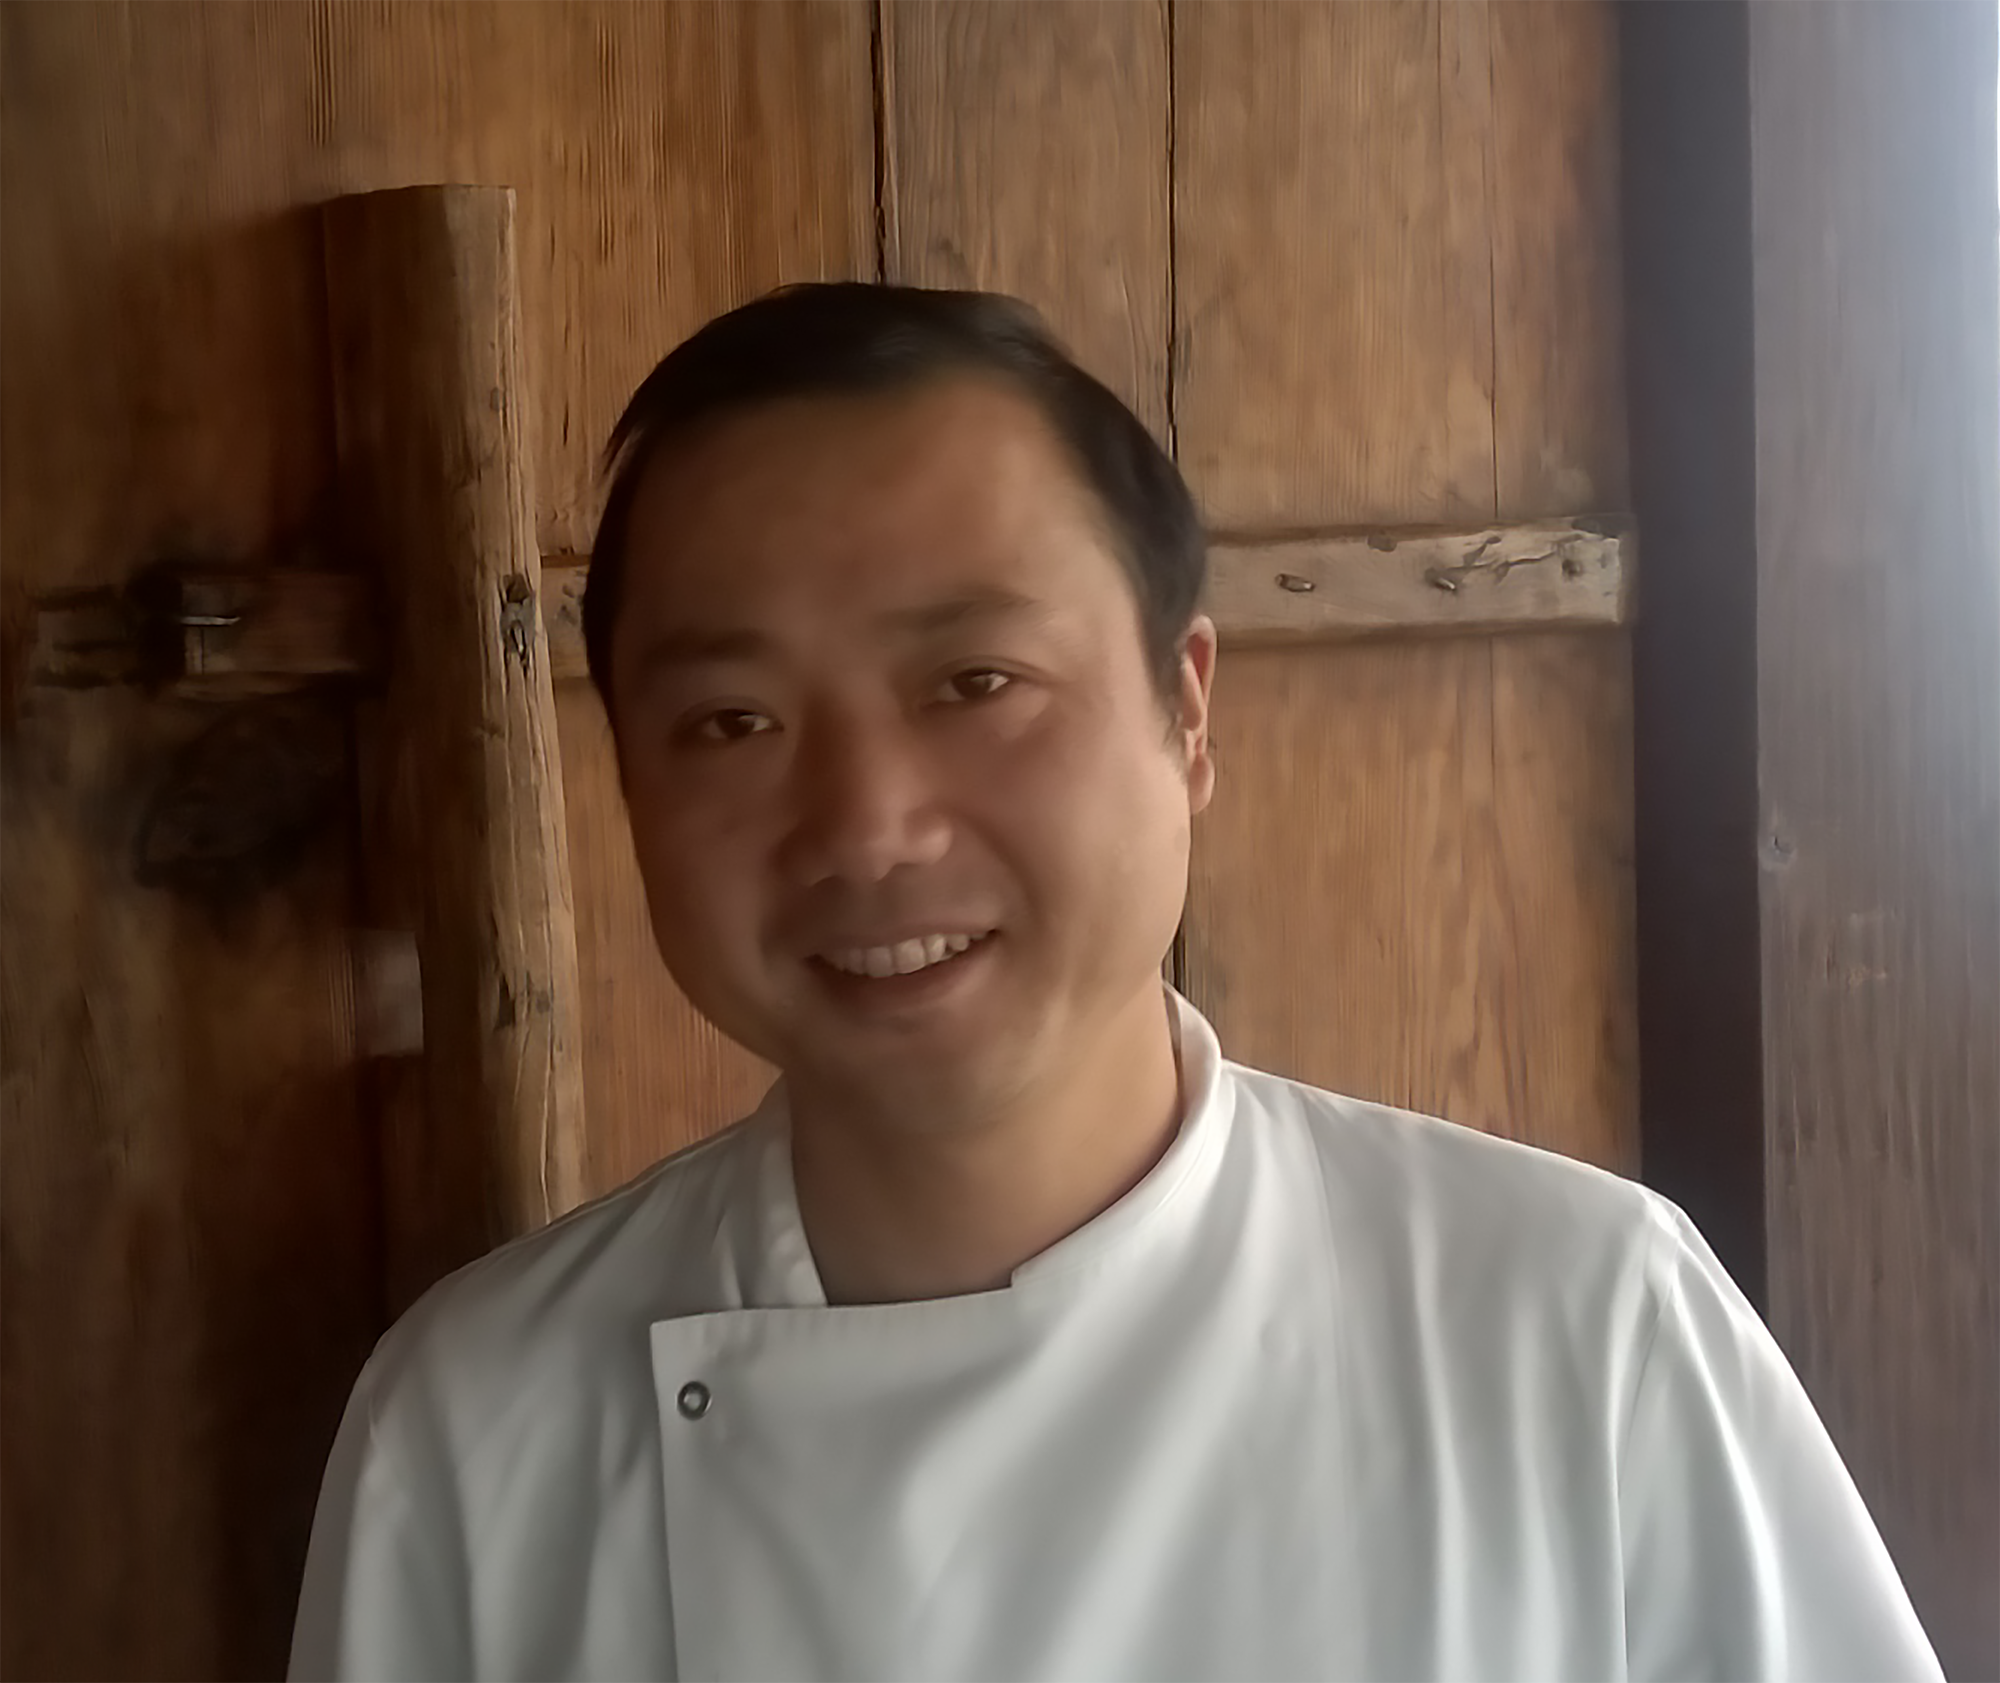 Hutong head chef Luo Bing